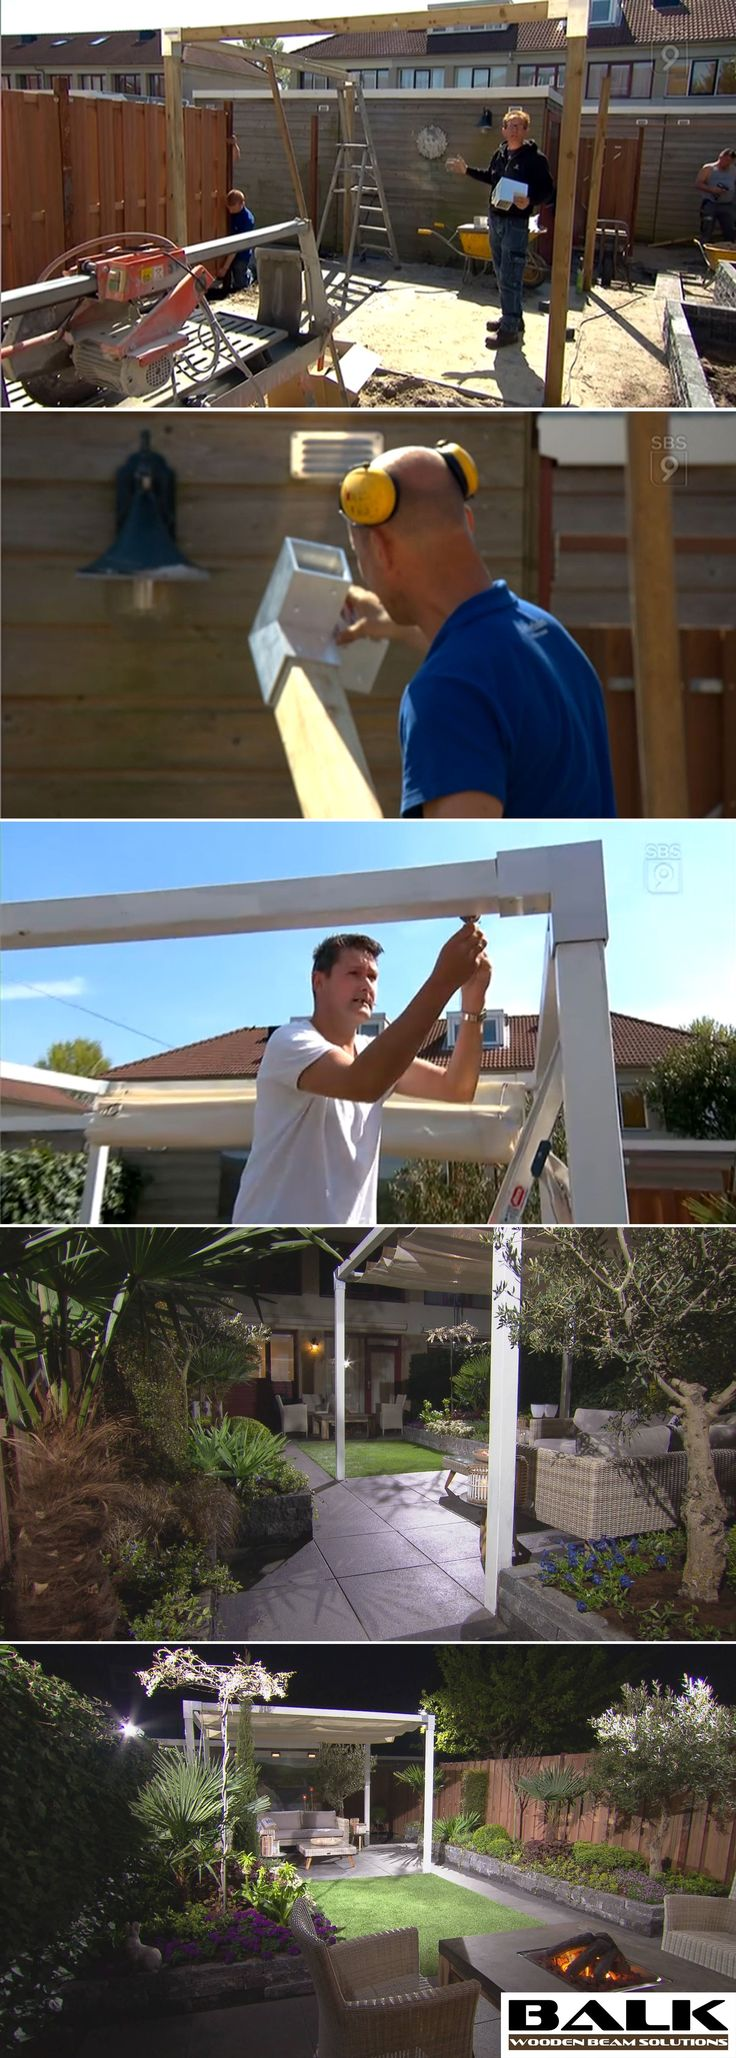 GORGEOUS pergola made with BALK connectors | couplings | joints | fittings | corner pieces for wooden beams.  This episode is in Dutch. http://www.sbs6.nl/programmas/robs-grote-tuinverbouwing/videos/zz6hrCMkkR1/robs-grote-tuinverbouwing-aflevering-36/